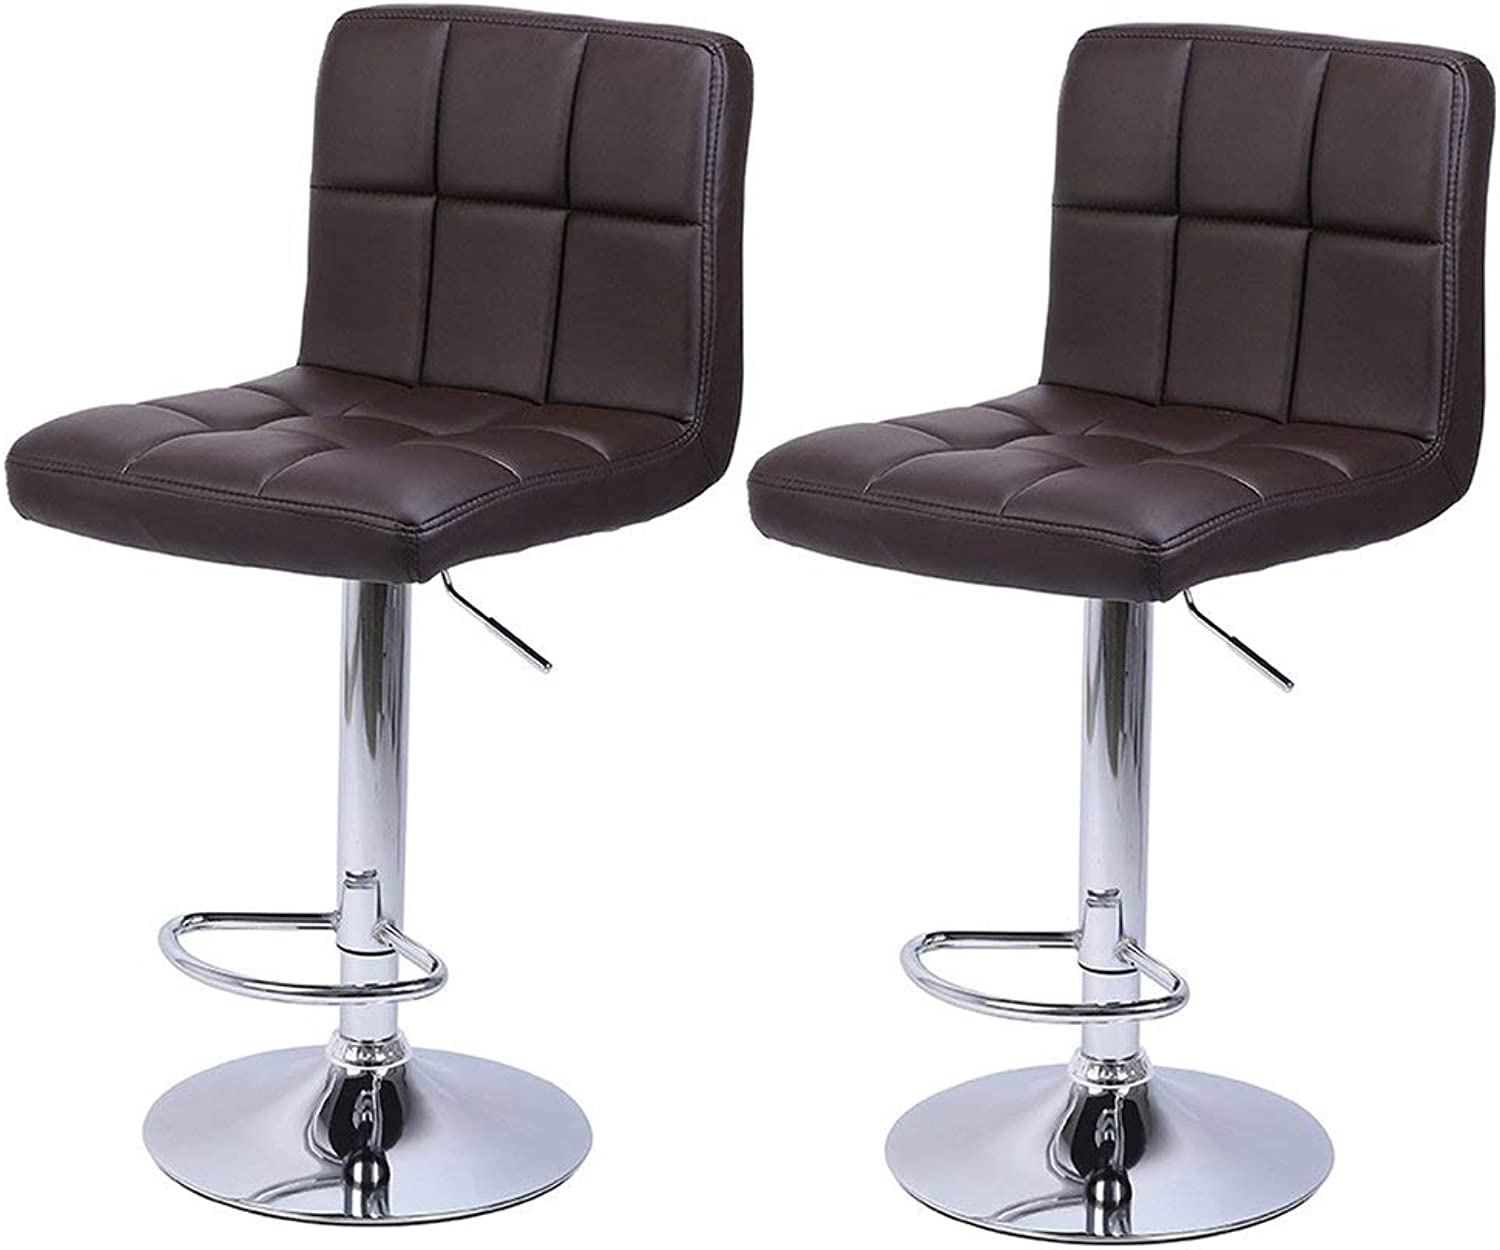 Tthappy76 2Pcs Leather Adjustable Bar Stools with Back Counter Height Swivel Stool Checks Round Cushion Bar Stool,as Show